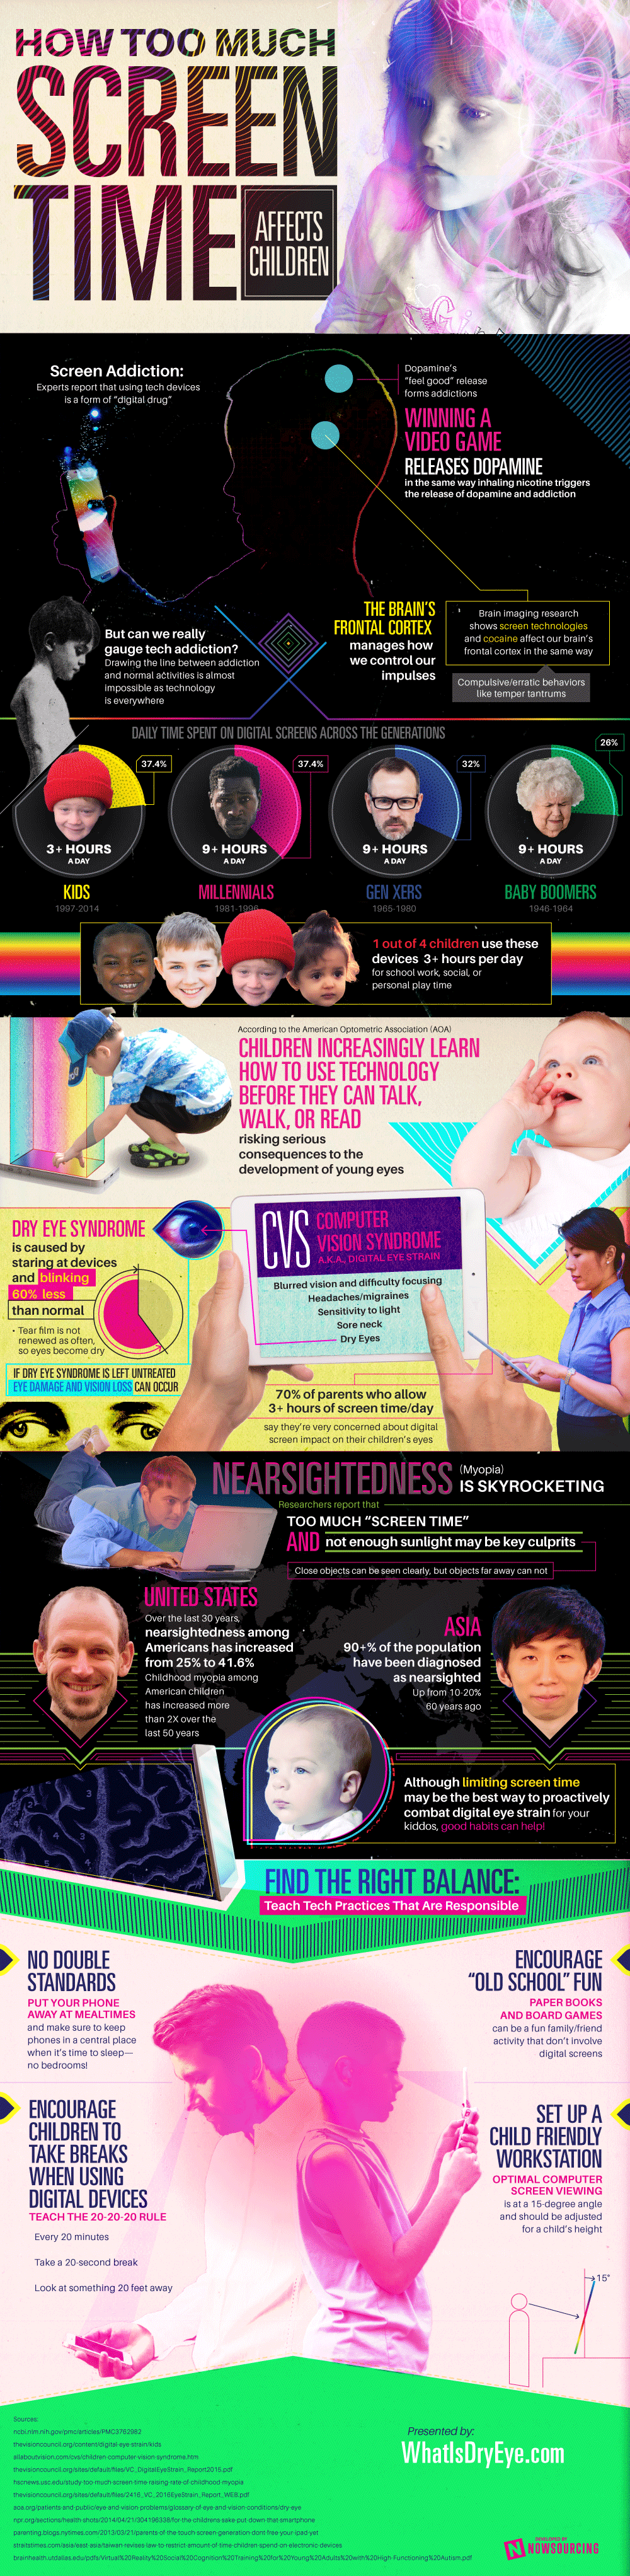 Is Technology Harming Your Child? - Infographic